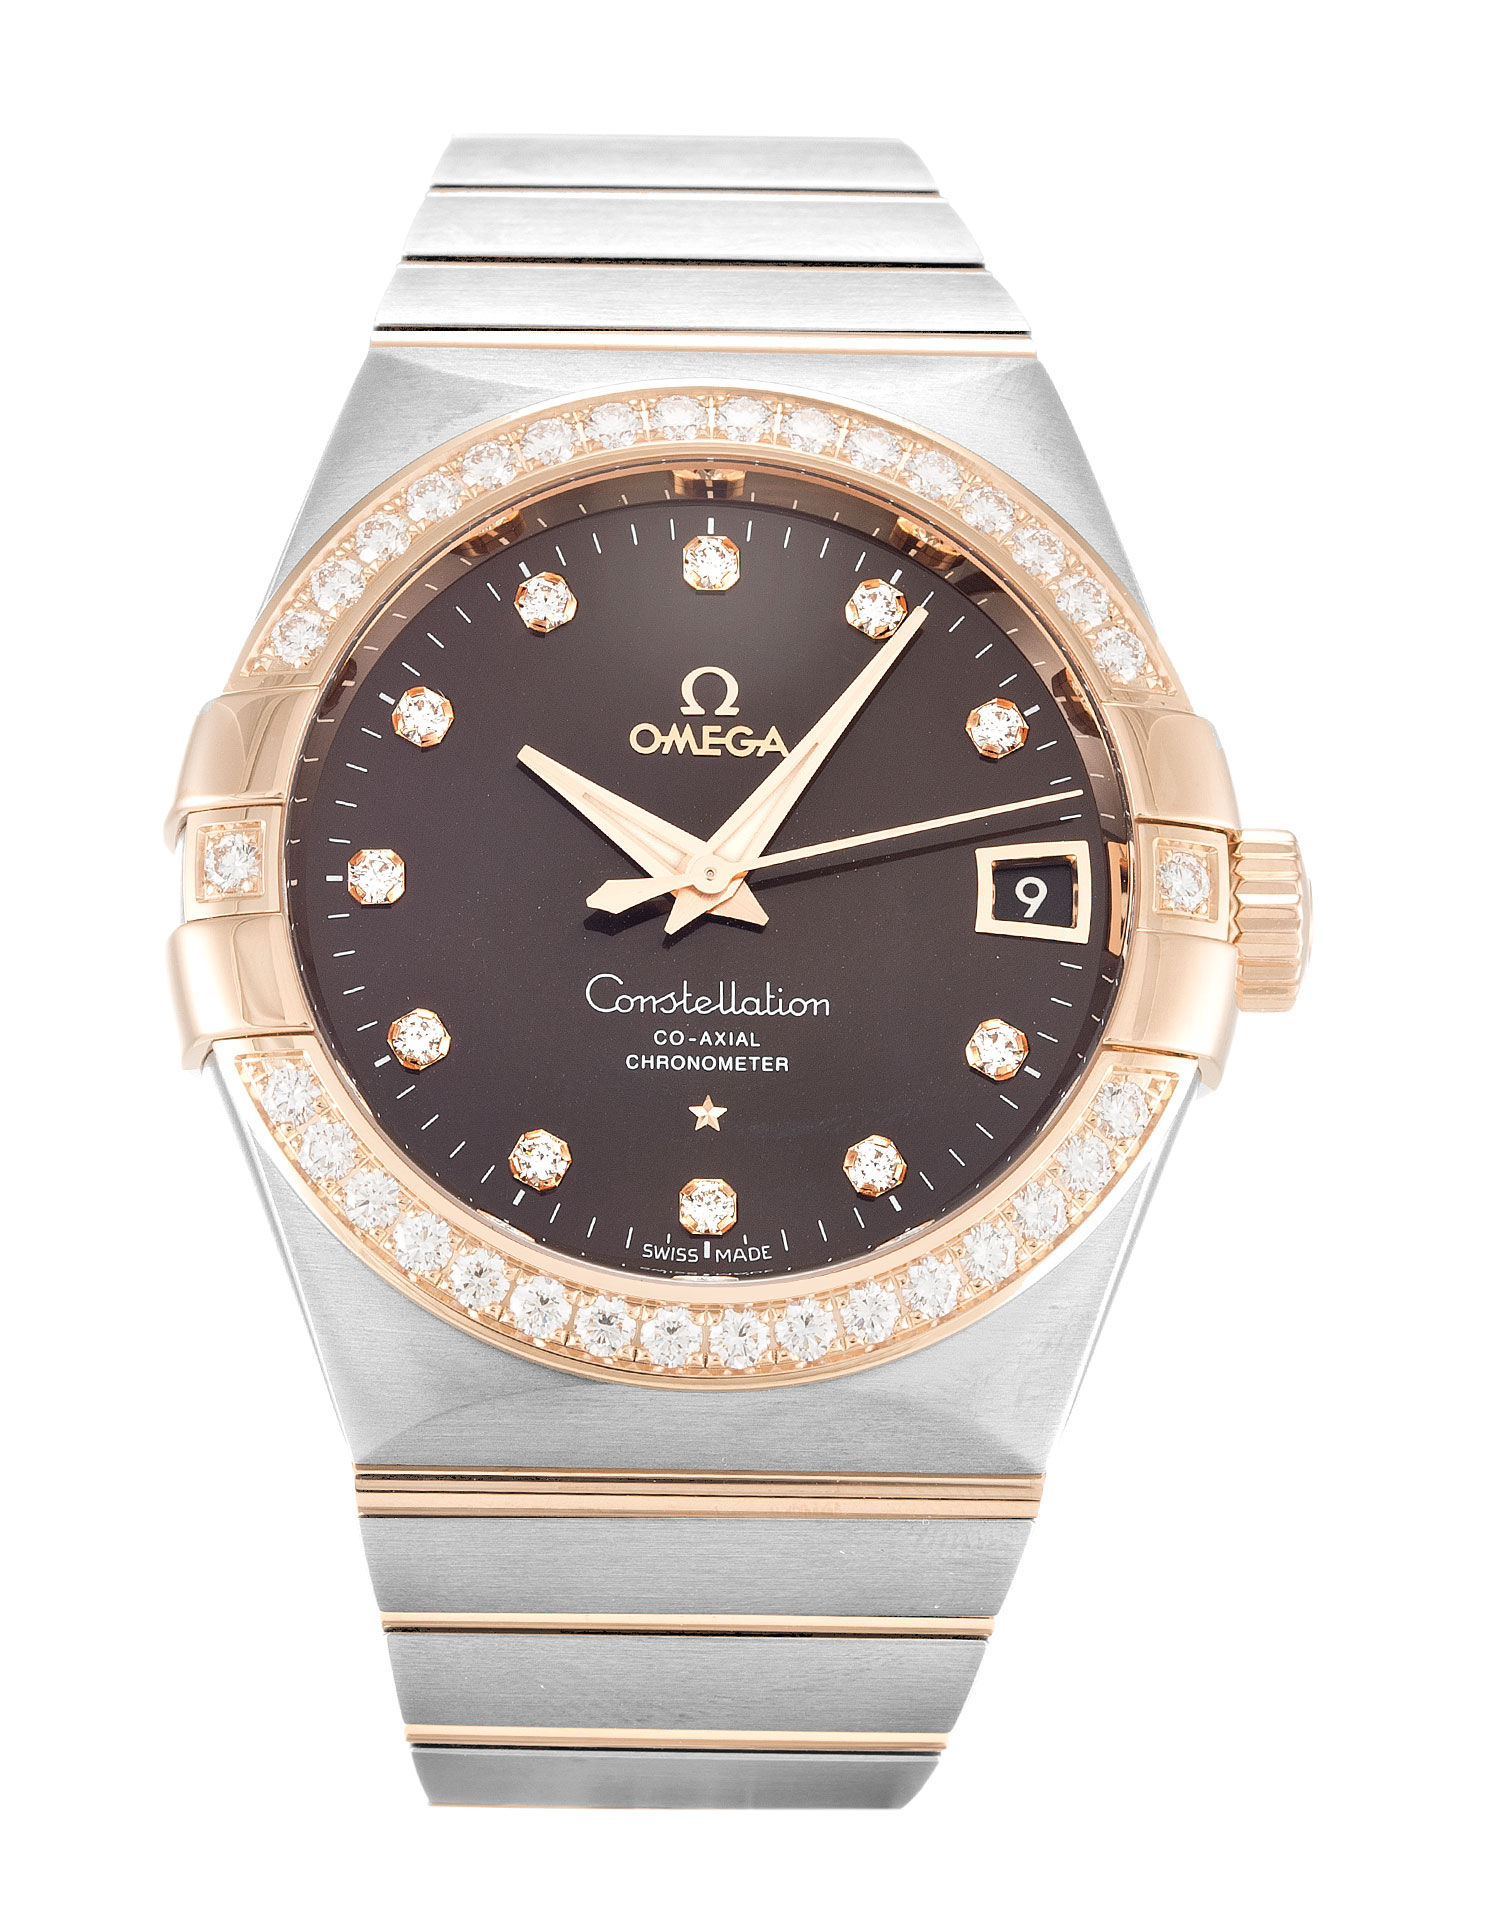 Omega Constellation Chronometer 123.25.38.21.63.001 Mens 38 Mm Rose Gold & Steel Set With Diamonds Case Automatic Co-axial Movement – iapac.to